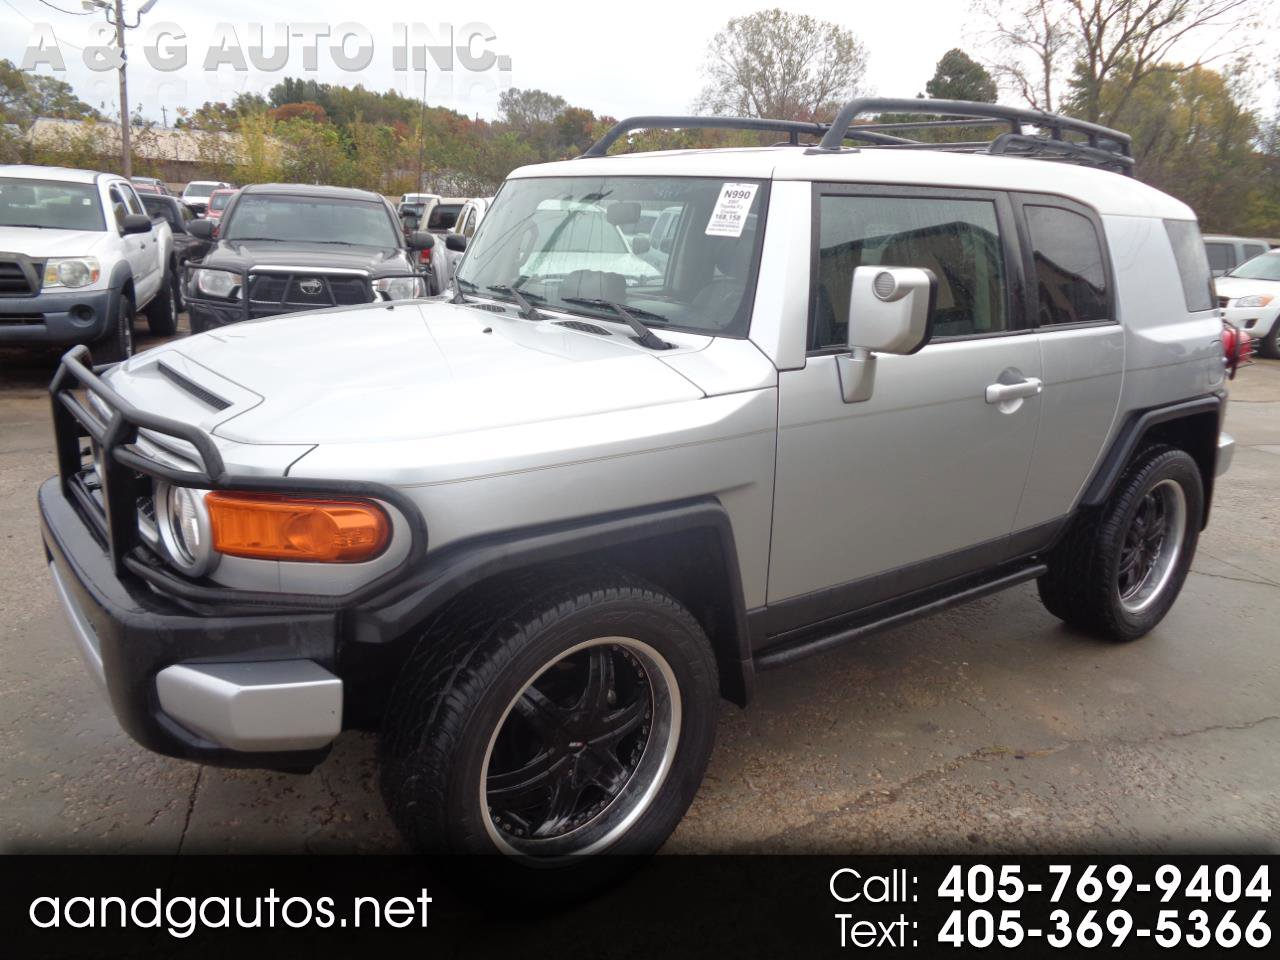 Used Toyota Fj Cruiser For Sale In Oklahoma City Ok 73111 Autotrader Fuel Filter Location